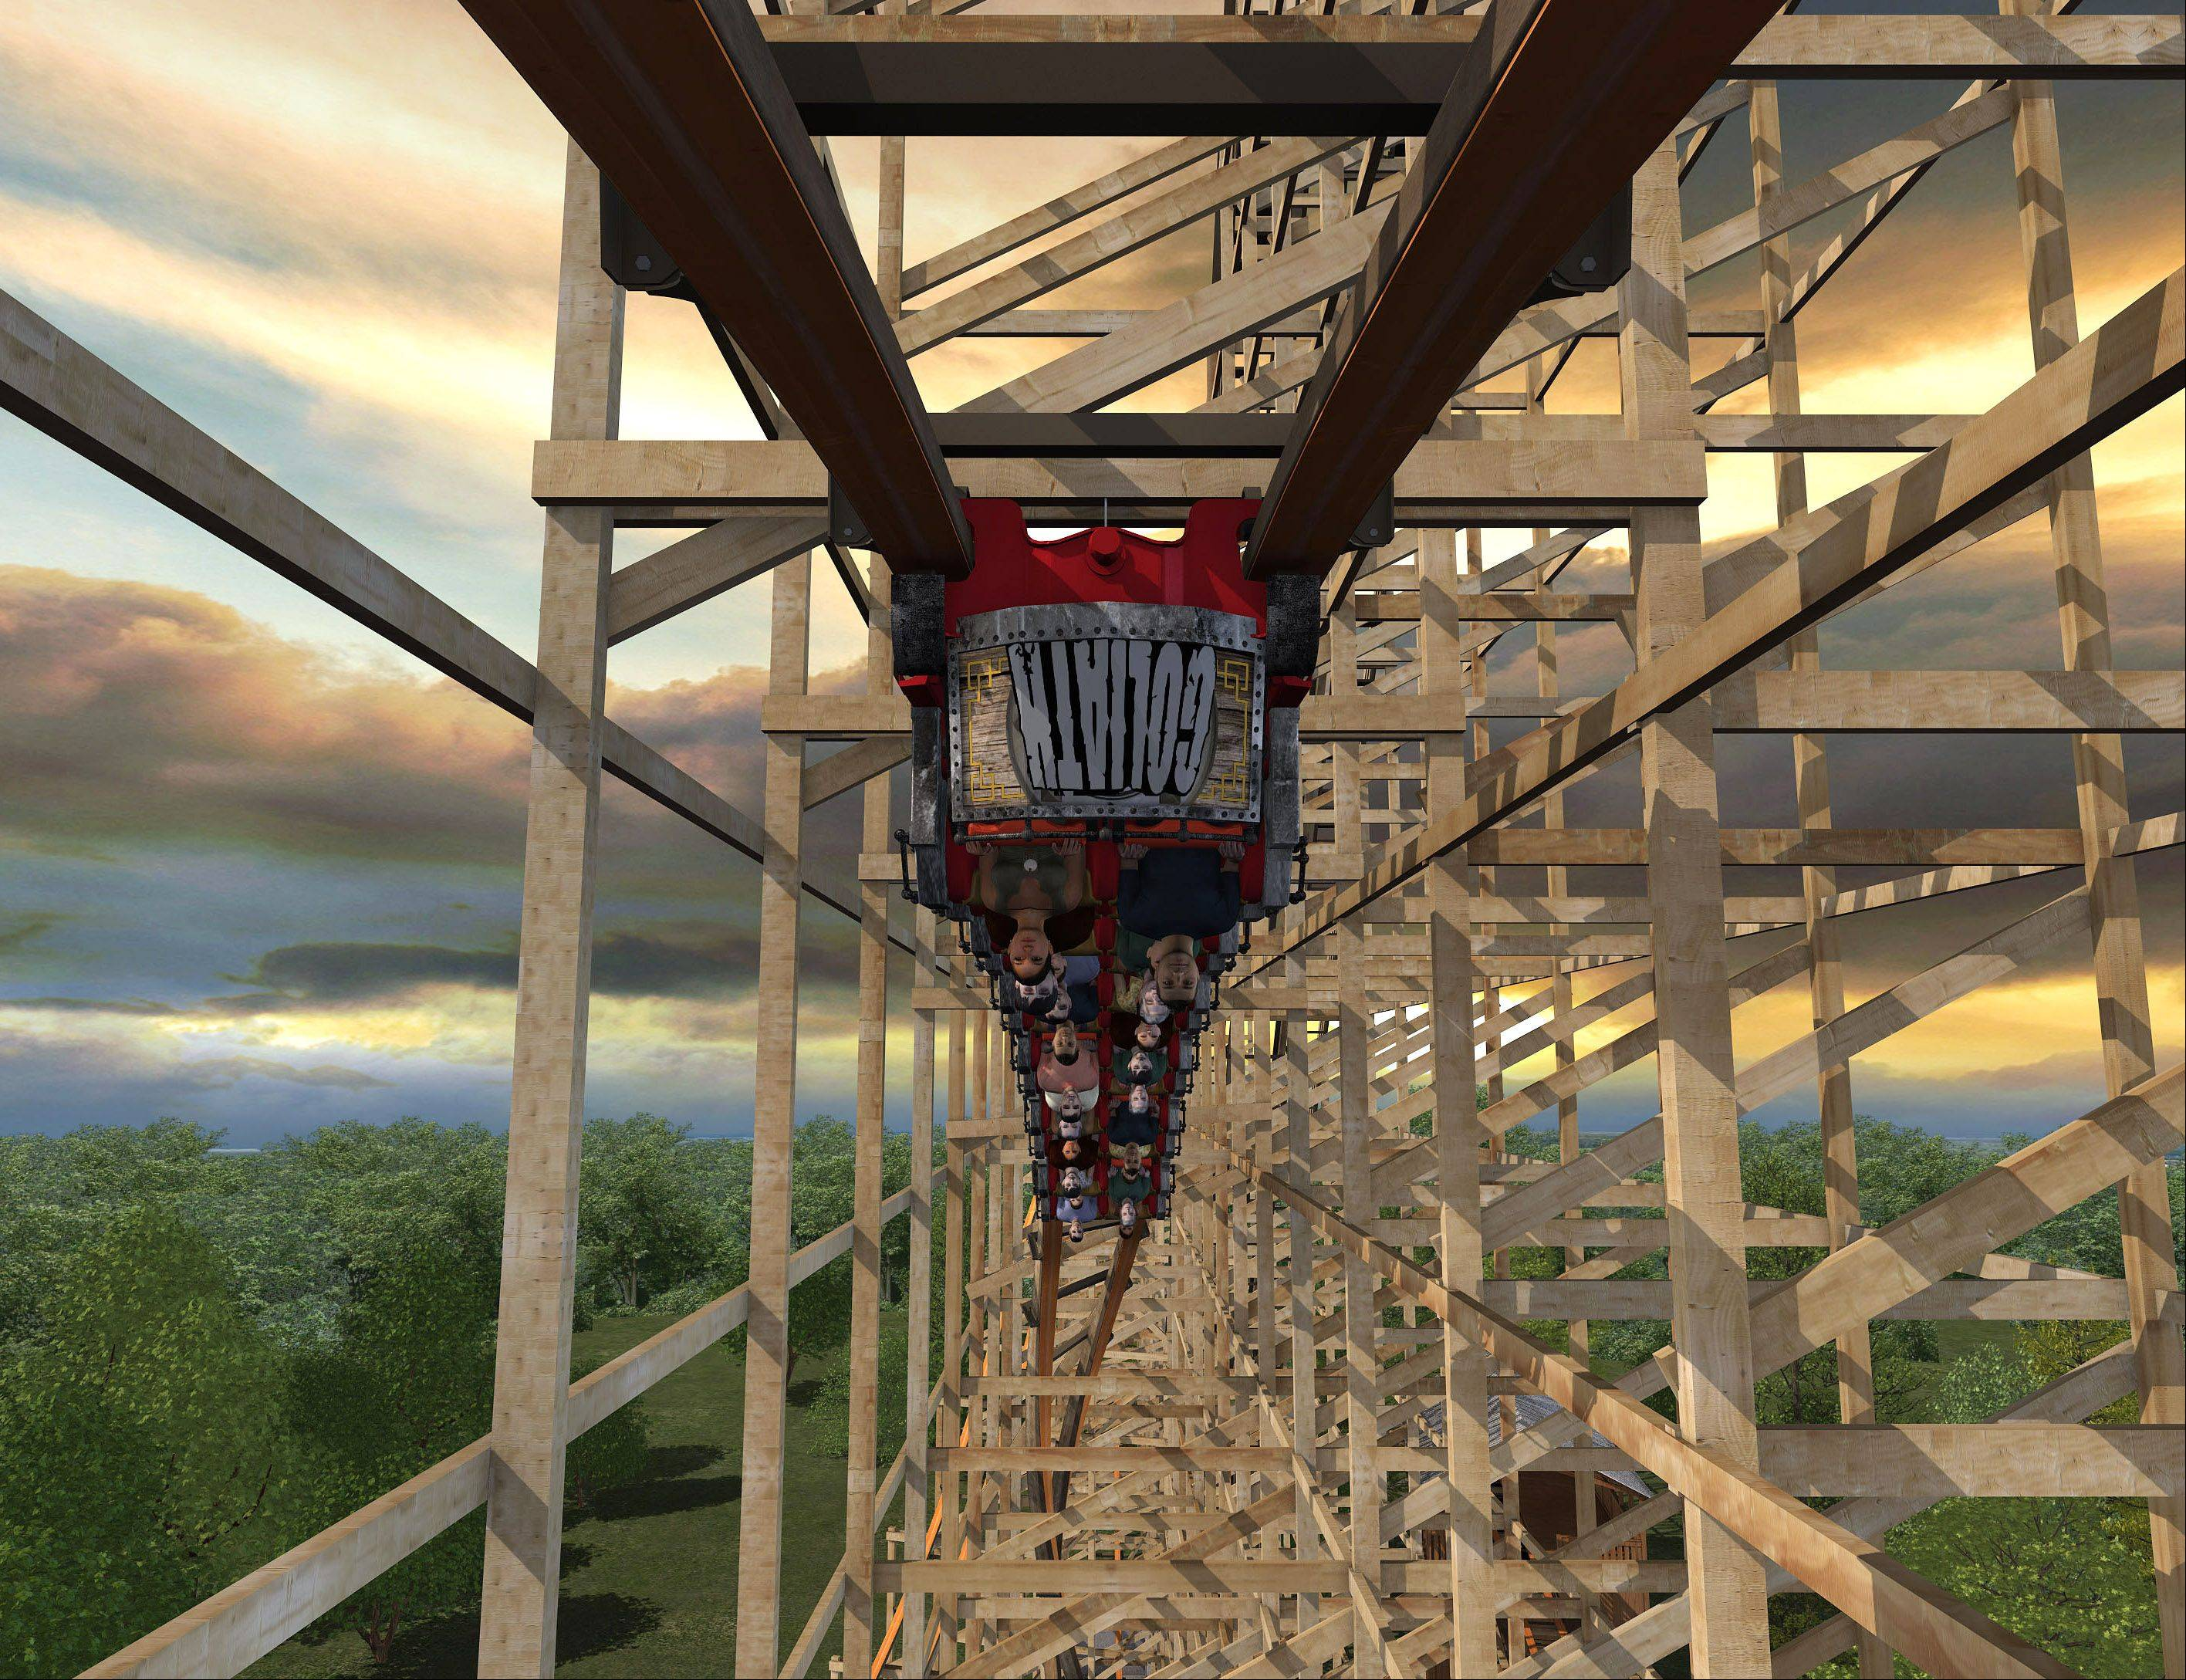 Gurnee officially OKs Six Flags Goliath roller coaster